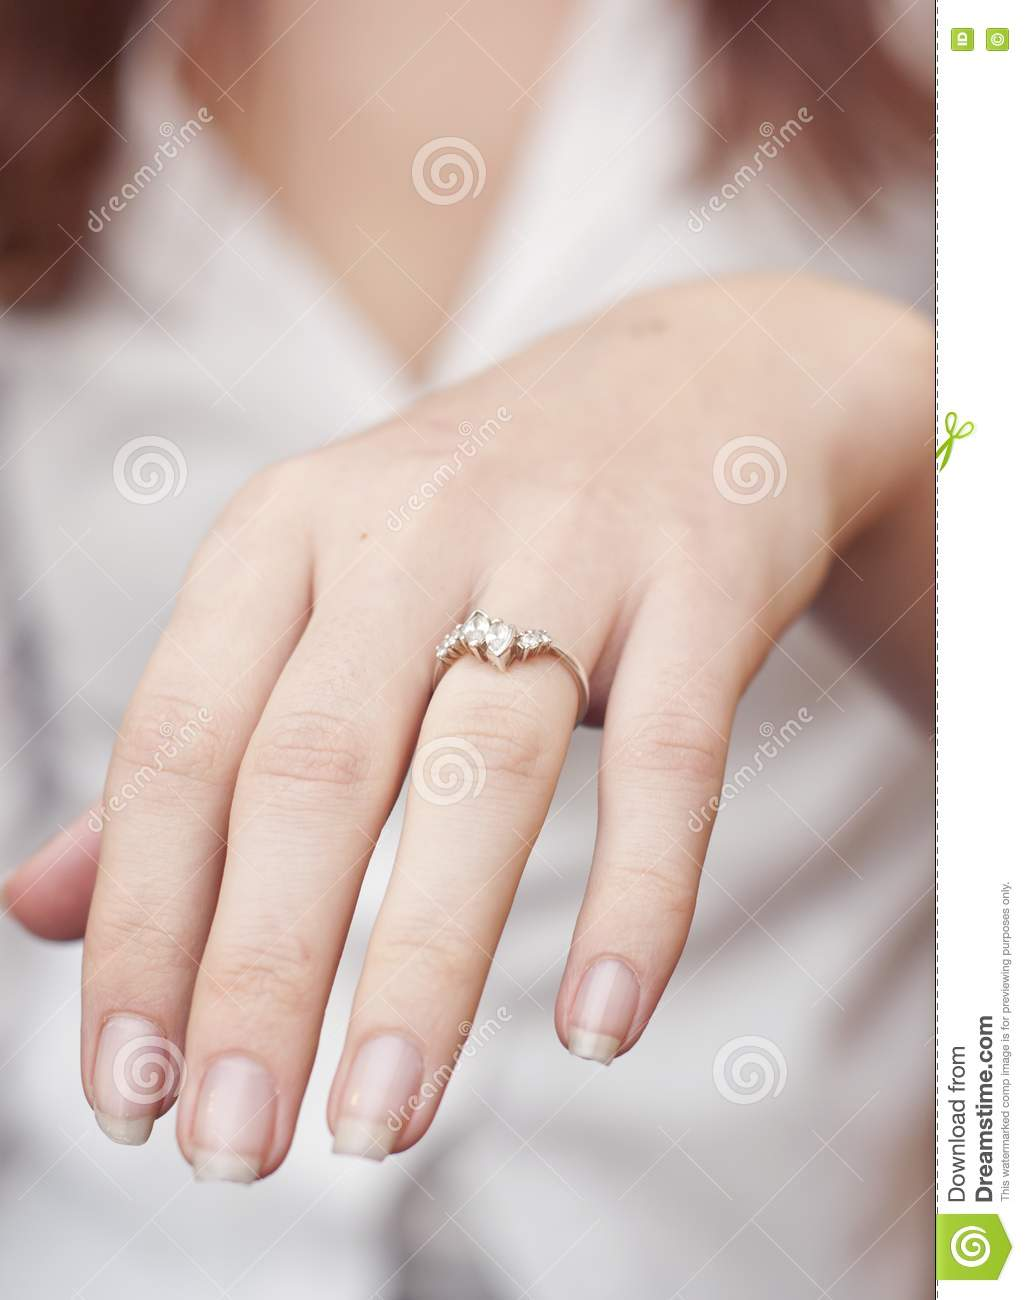 engagement ring into a finger royalty free stock images